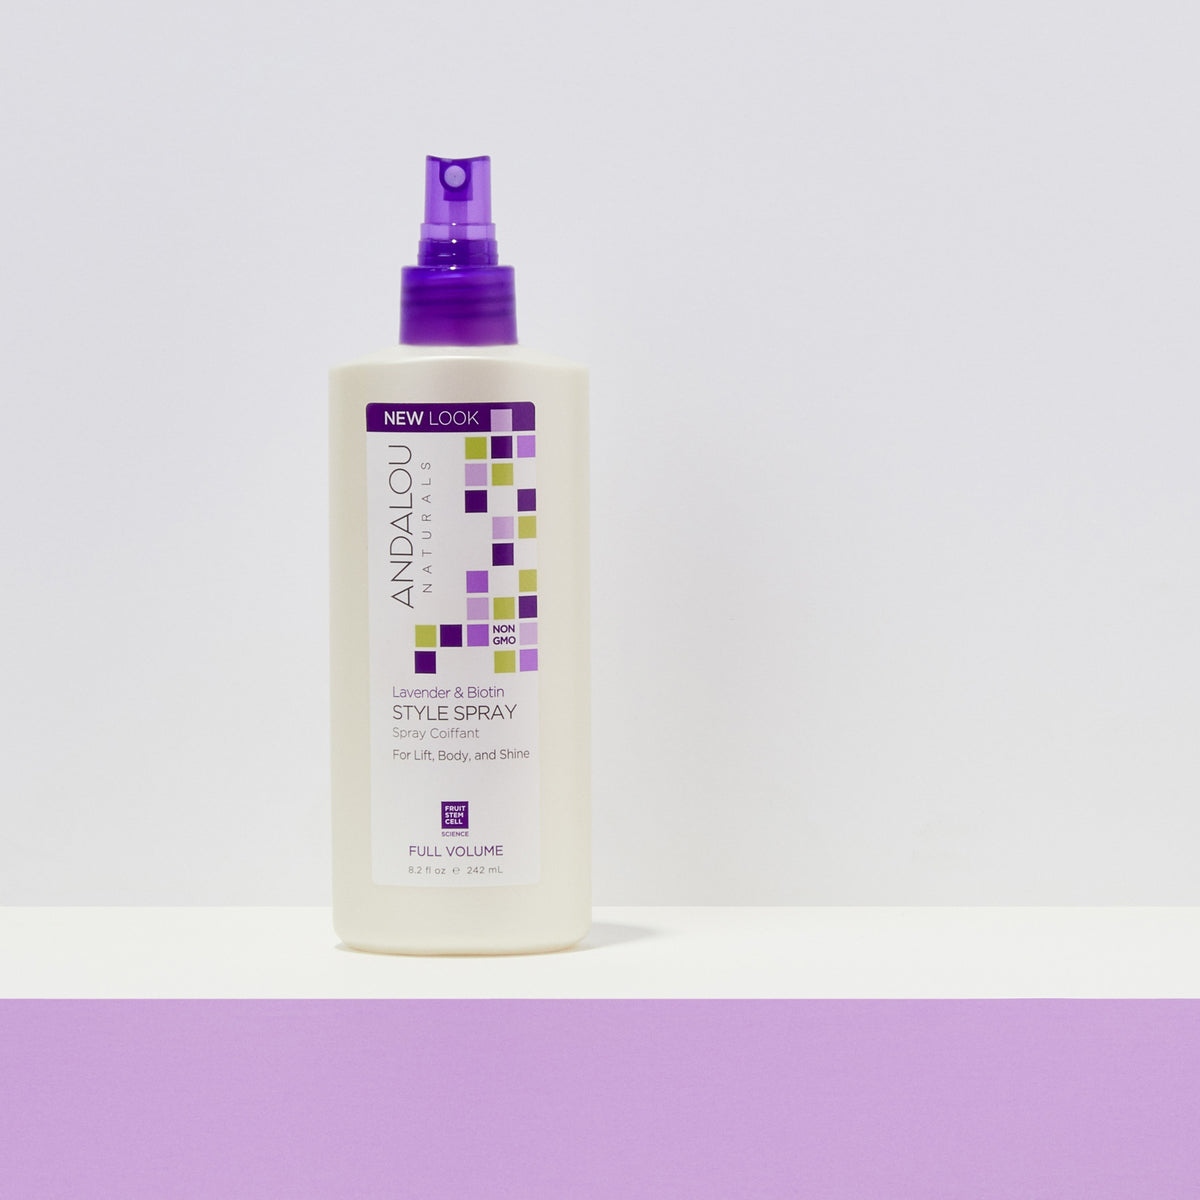 Lavender & Biotin Full Volume Hair Style Spray